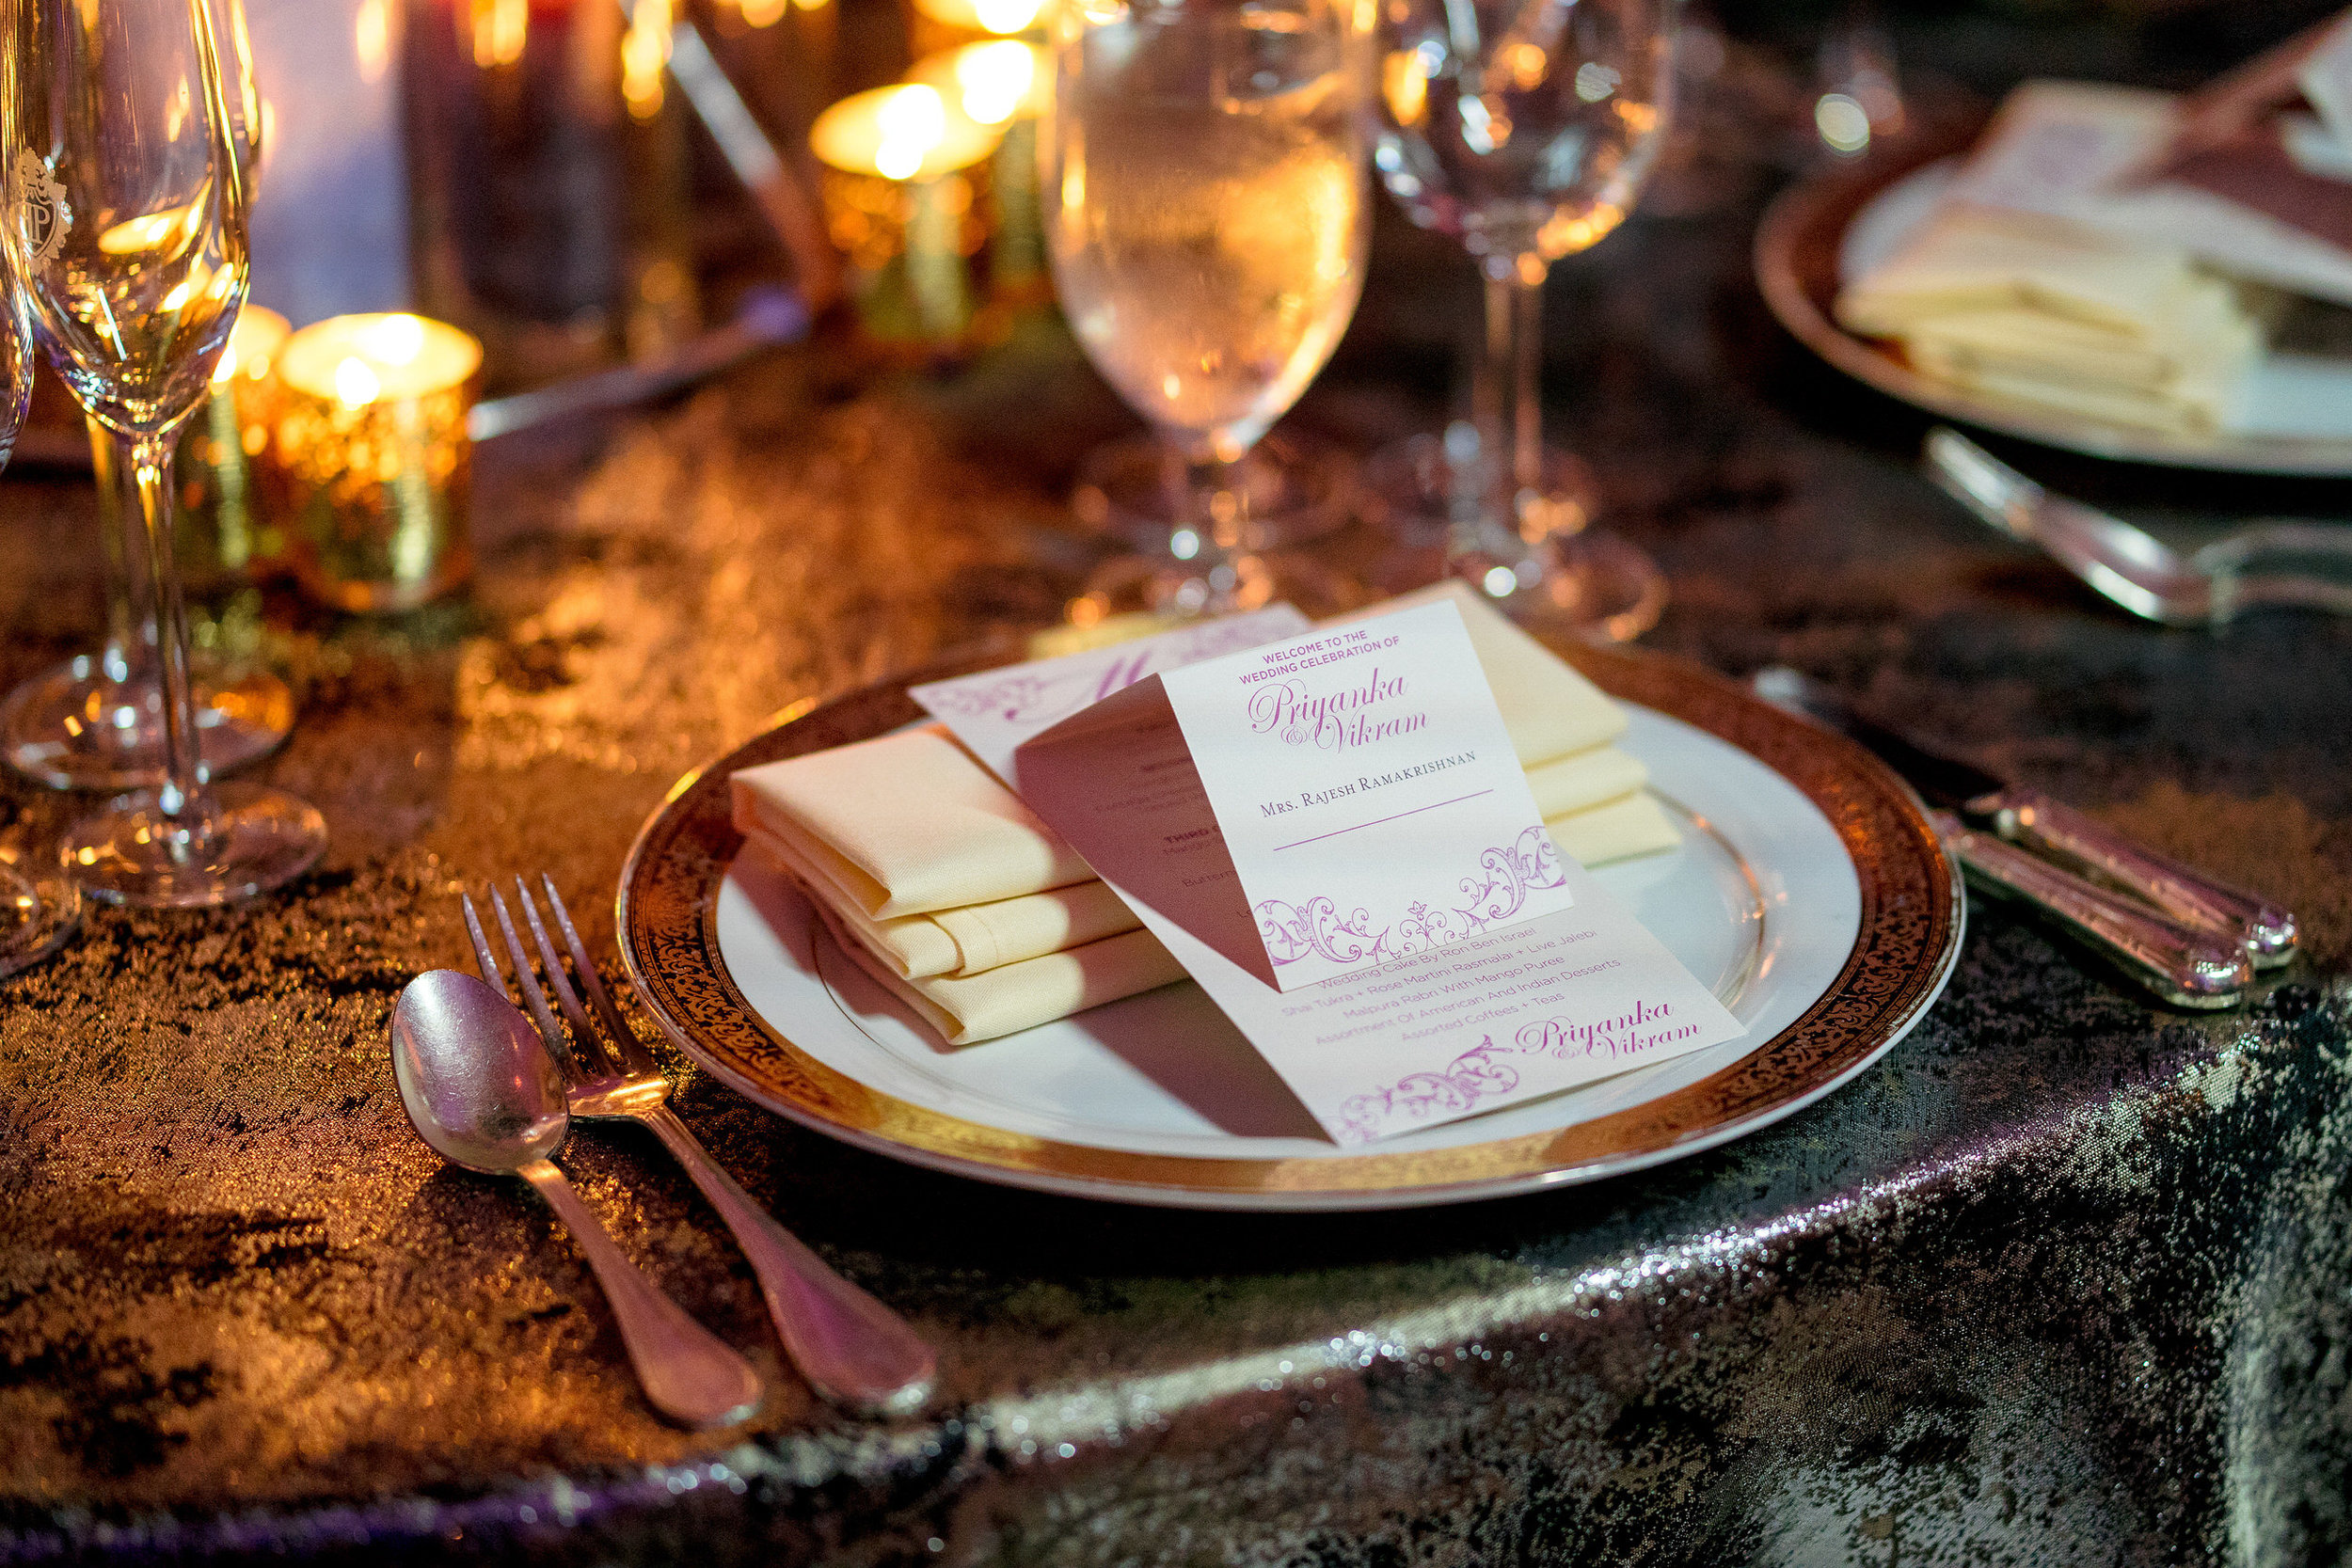 INDIAN WEDDING TABLE PLATE CLOSEUP.JPG